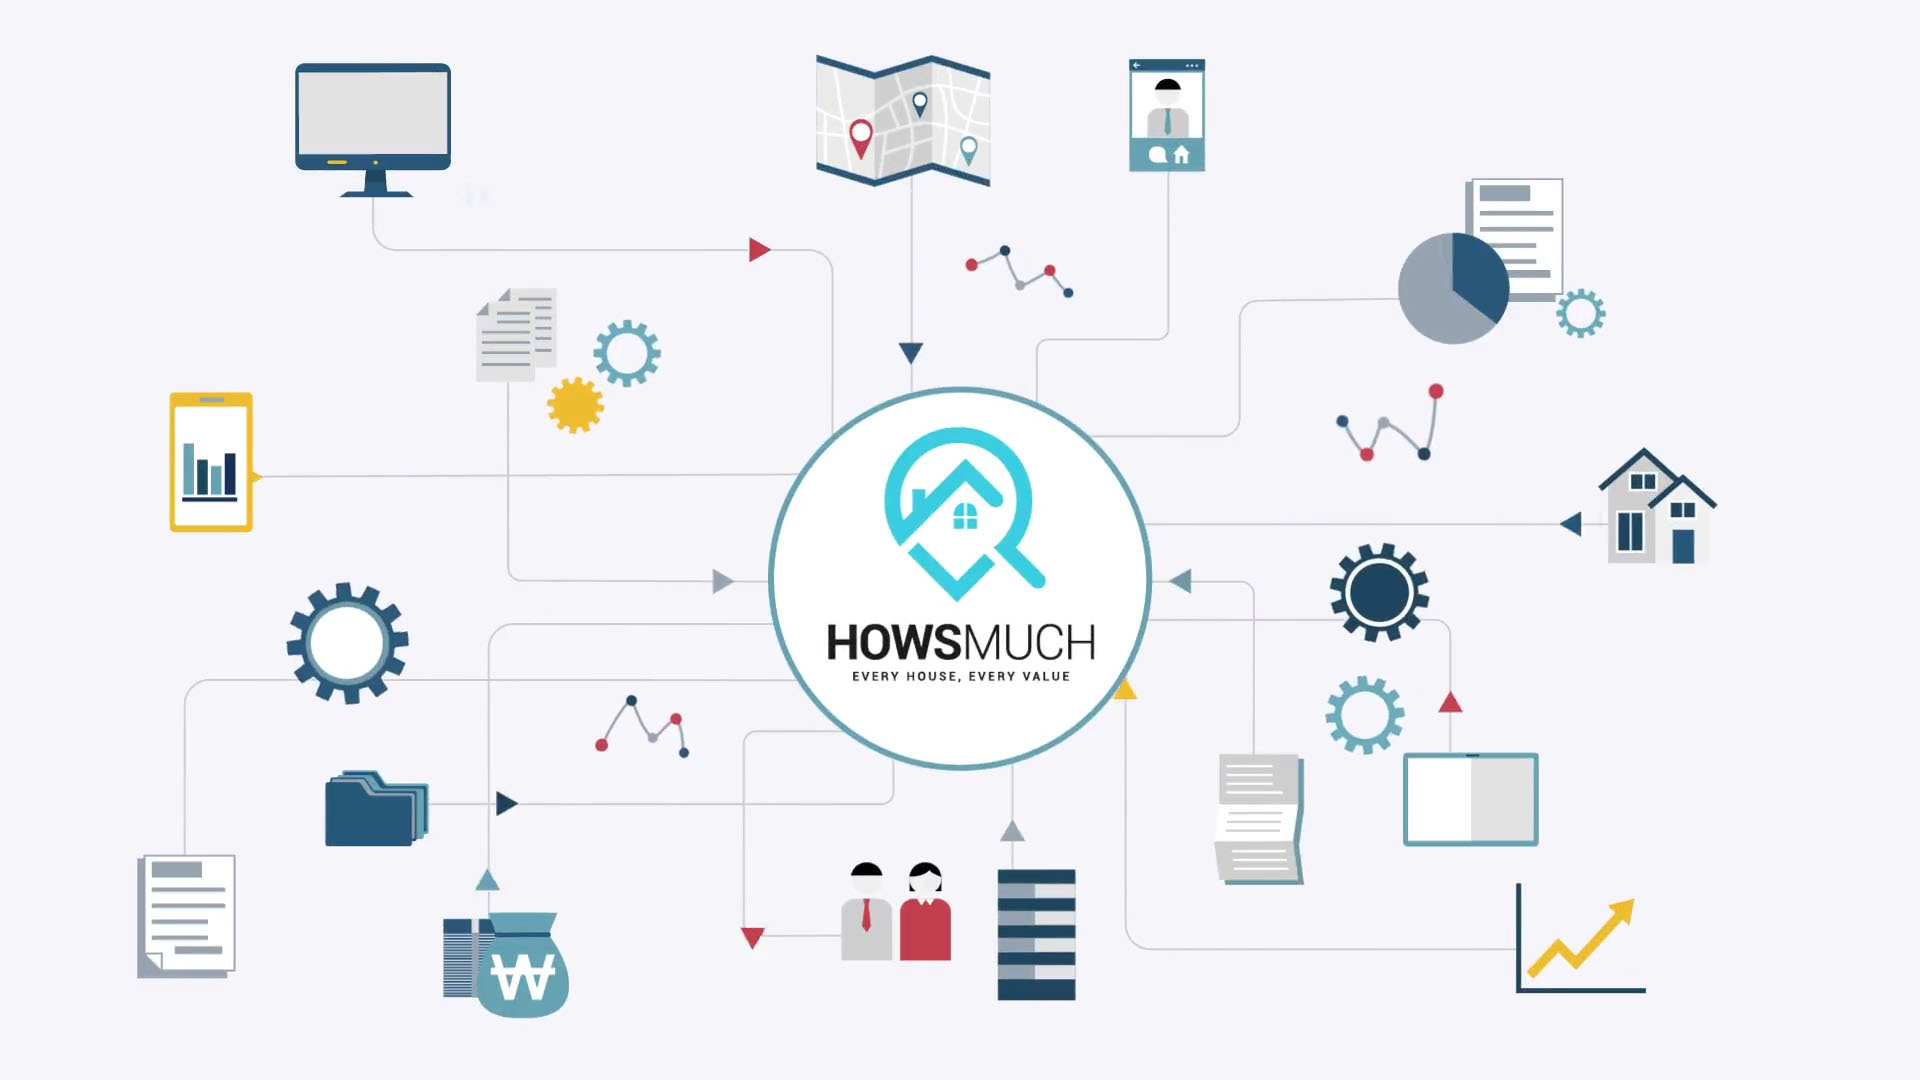 Howsmuch infographic